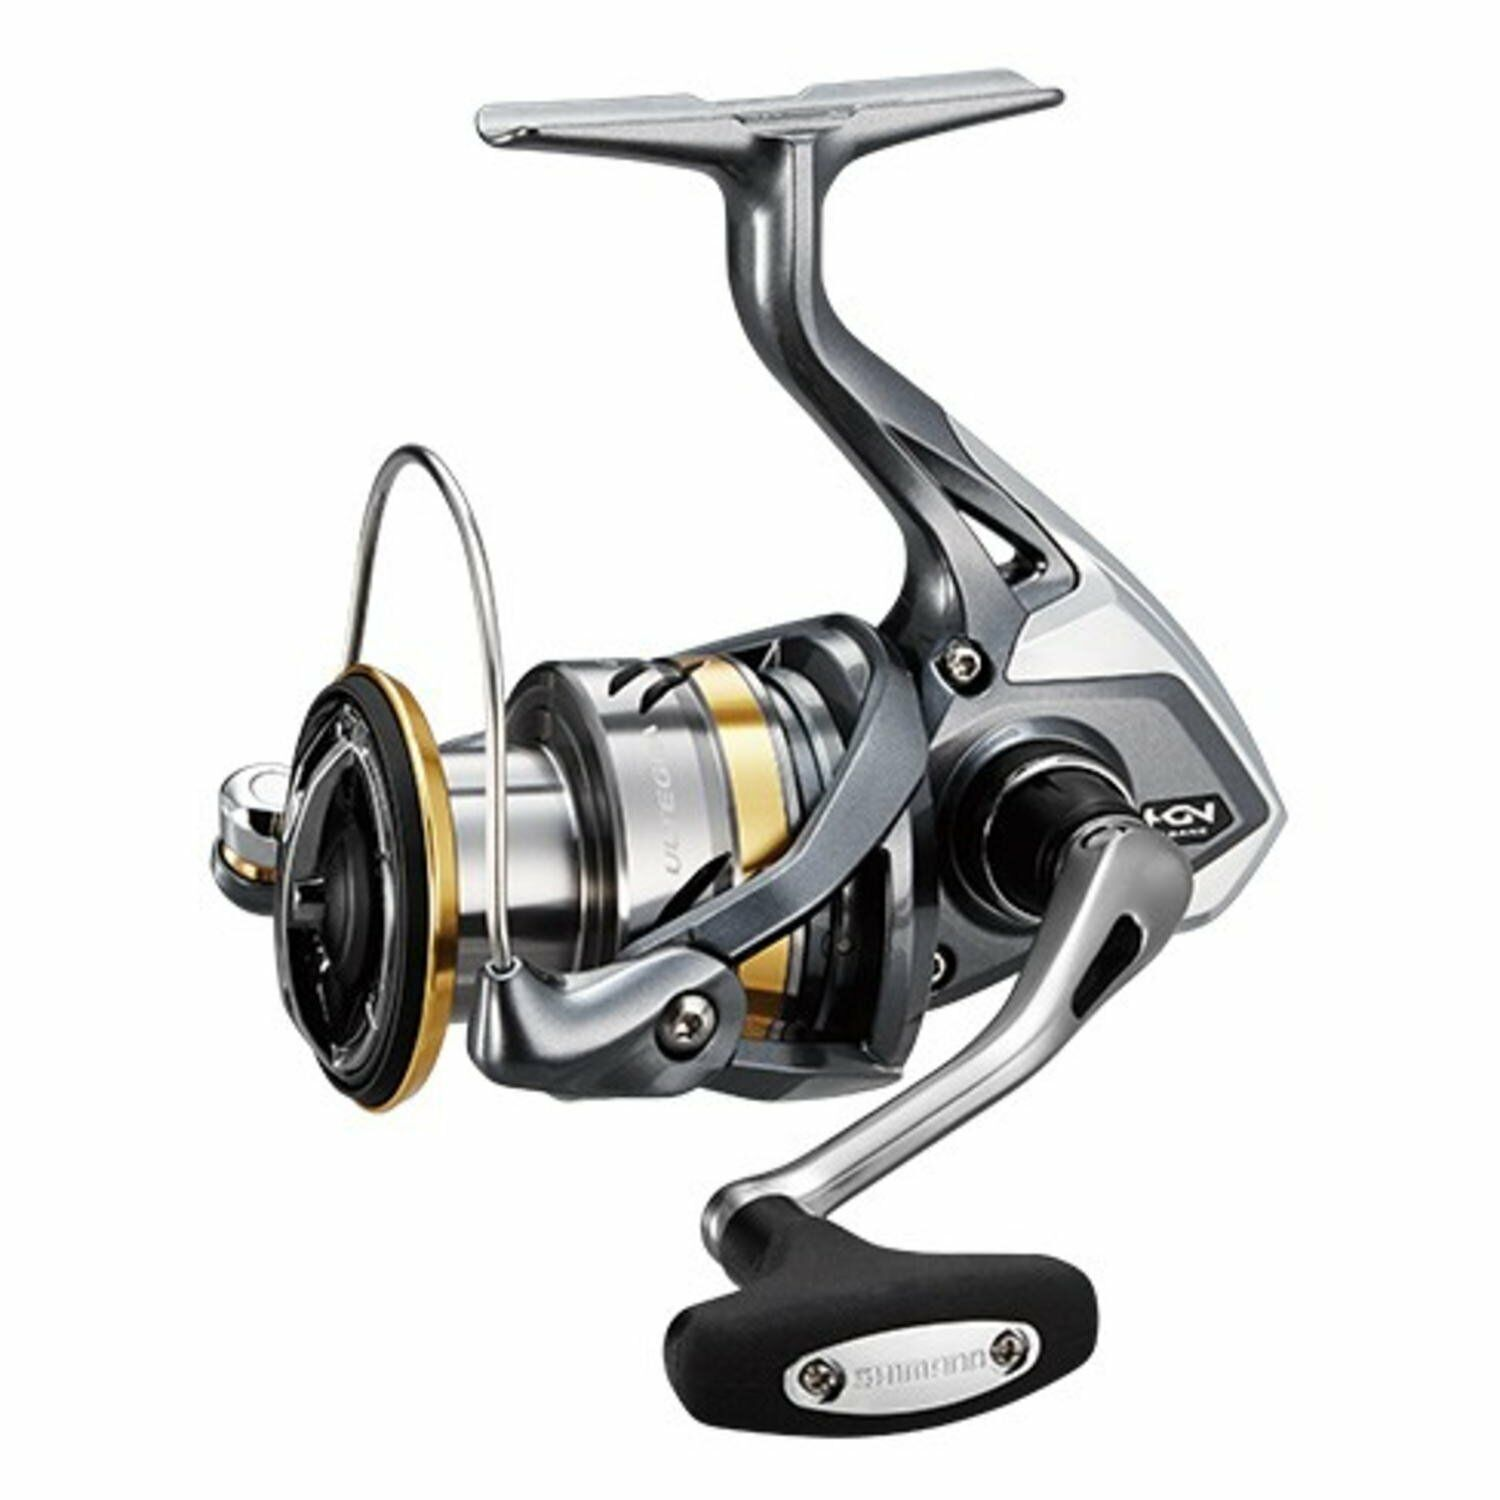 Shimano Spinning Fishing Reel 17 ULTEGRA C3000 from japan【Brand New in Box 】